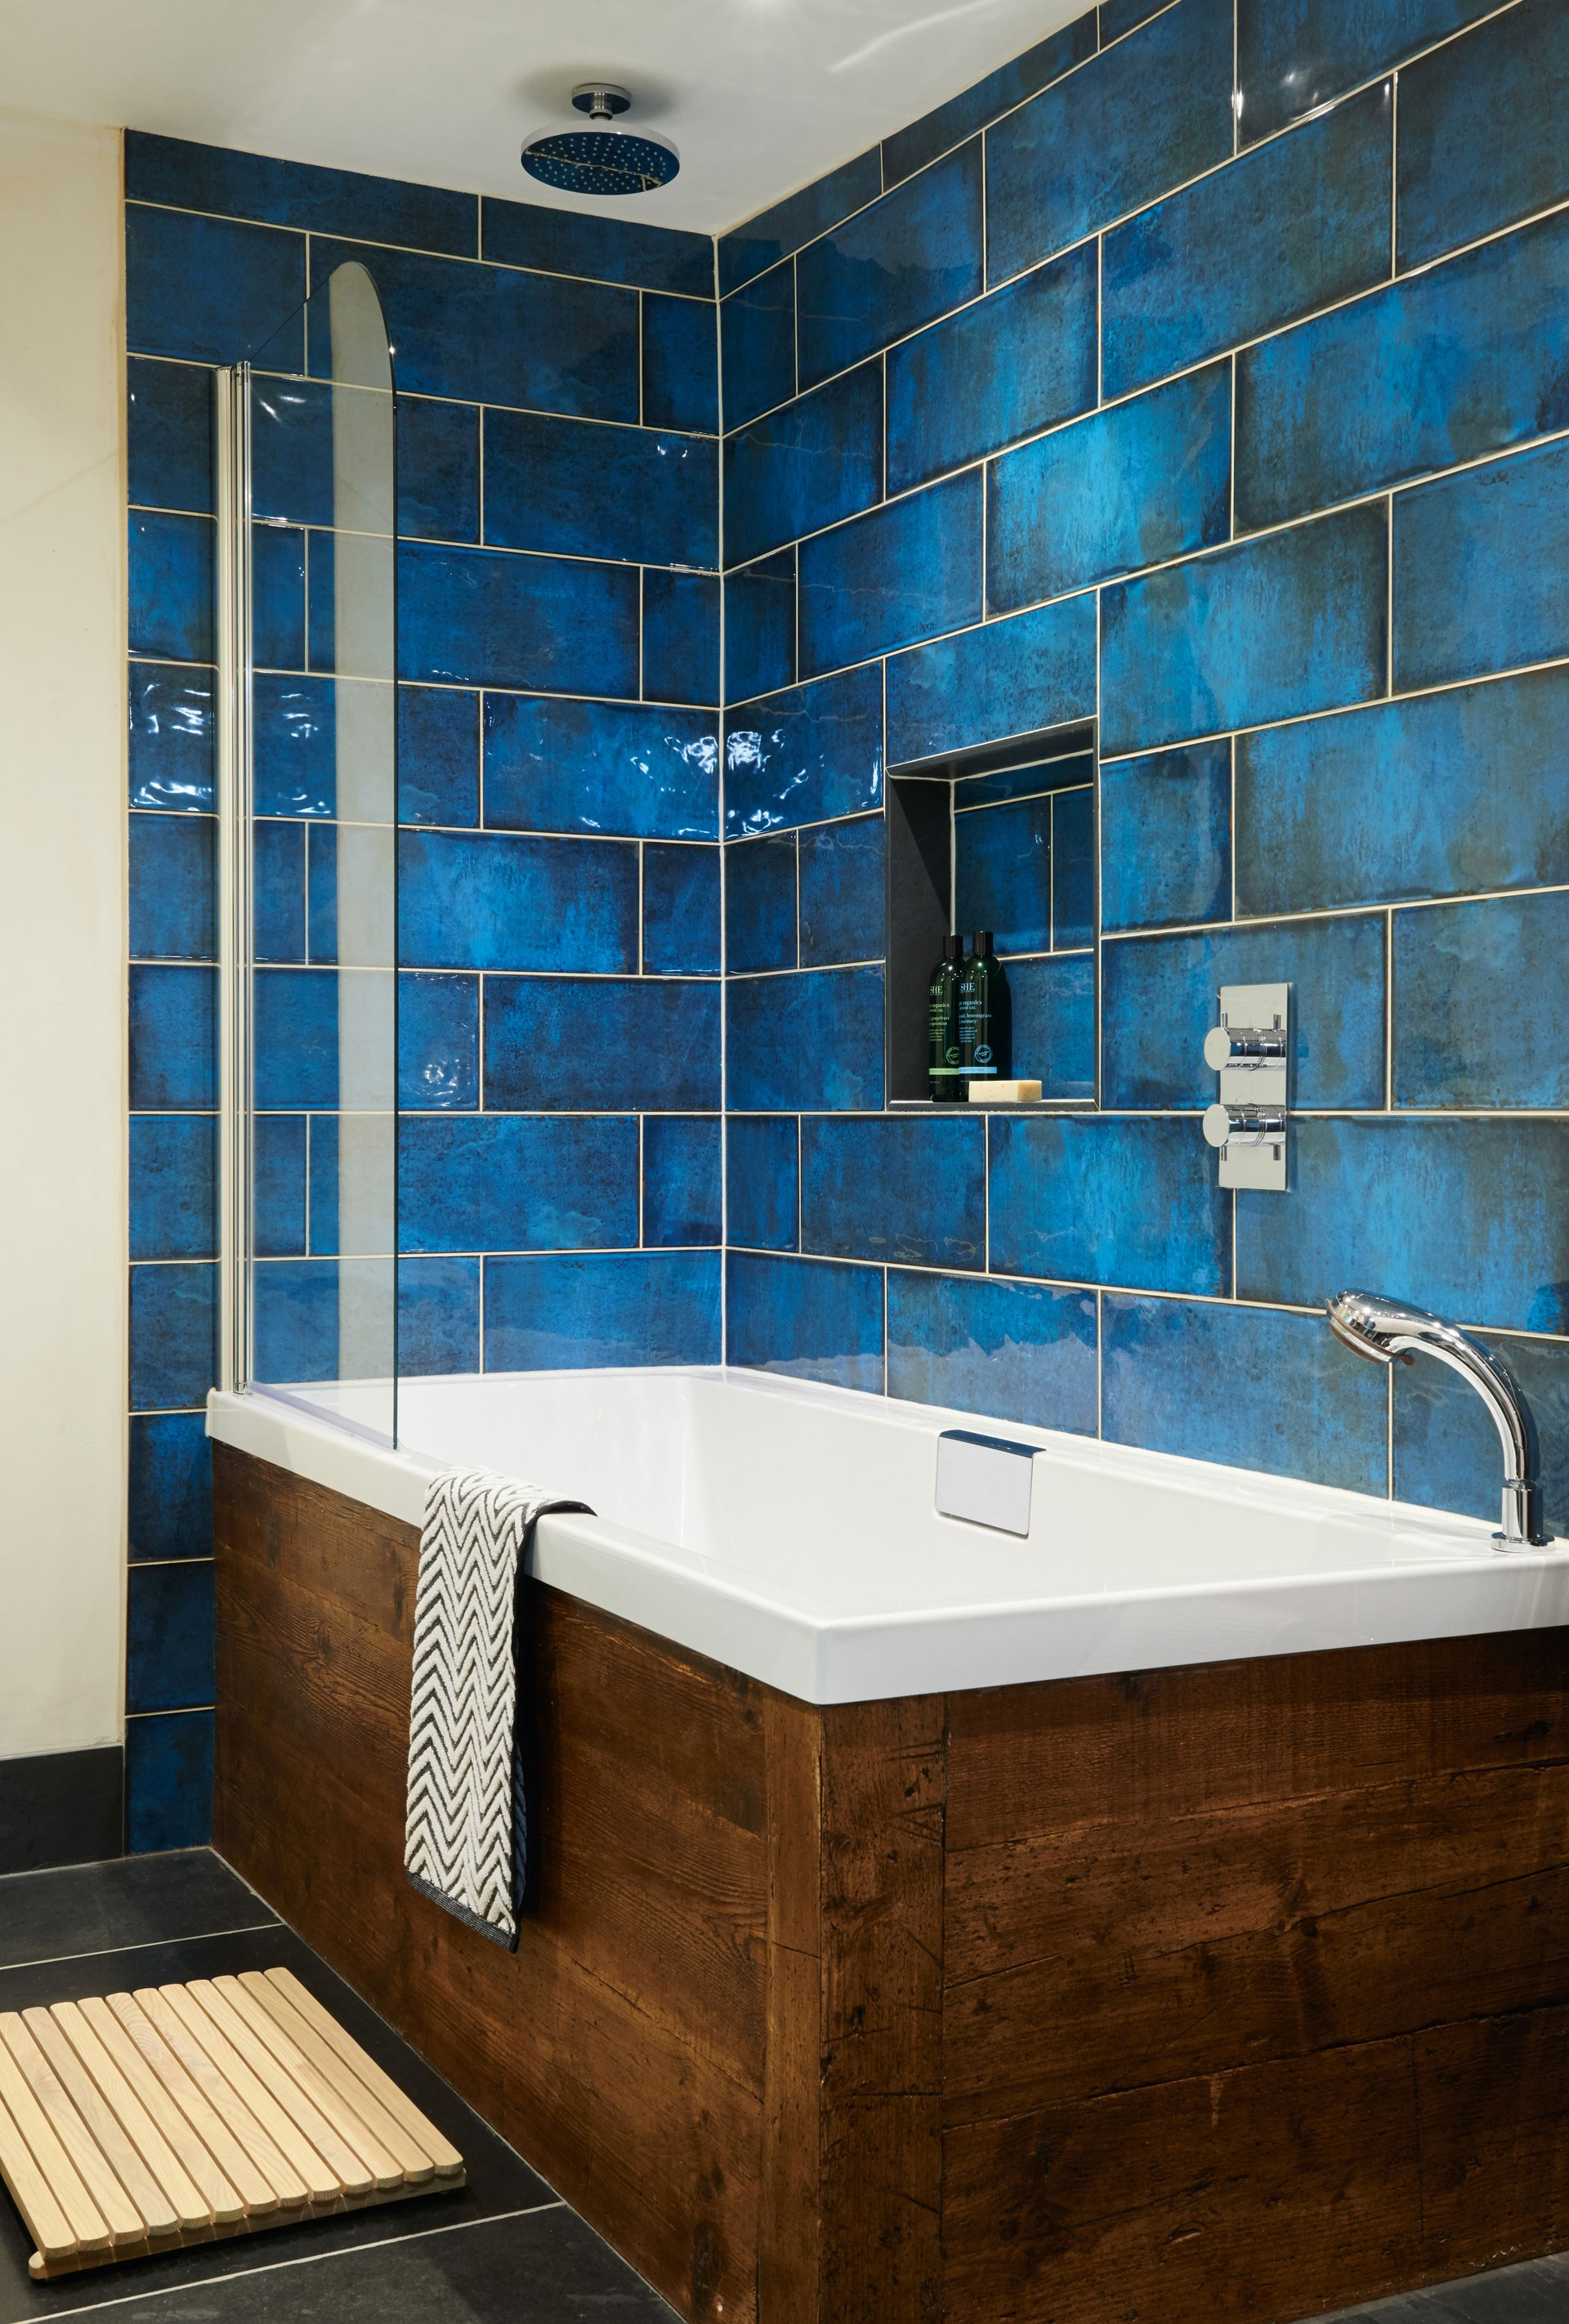 Bathroom Tiles Images. Gloss Or Matt Bathroom Wall Tiles? Tiles ...